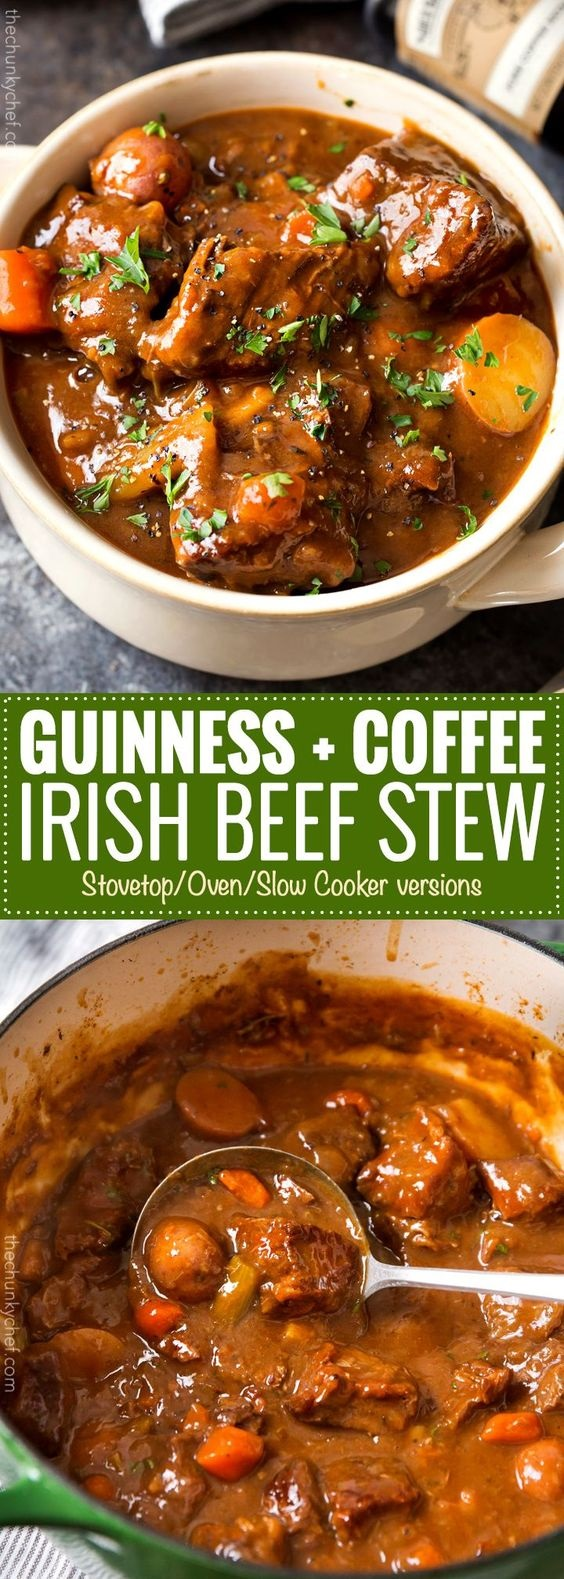 Irish Beef Stew With Guinness And Coffee